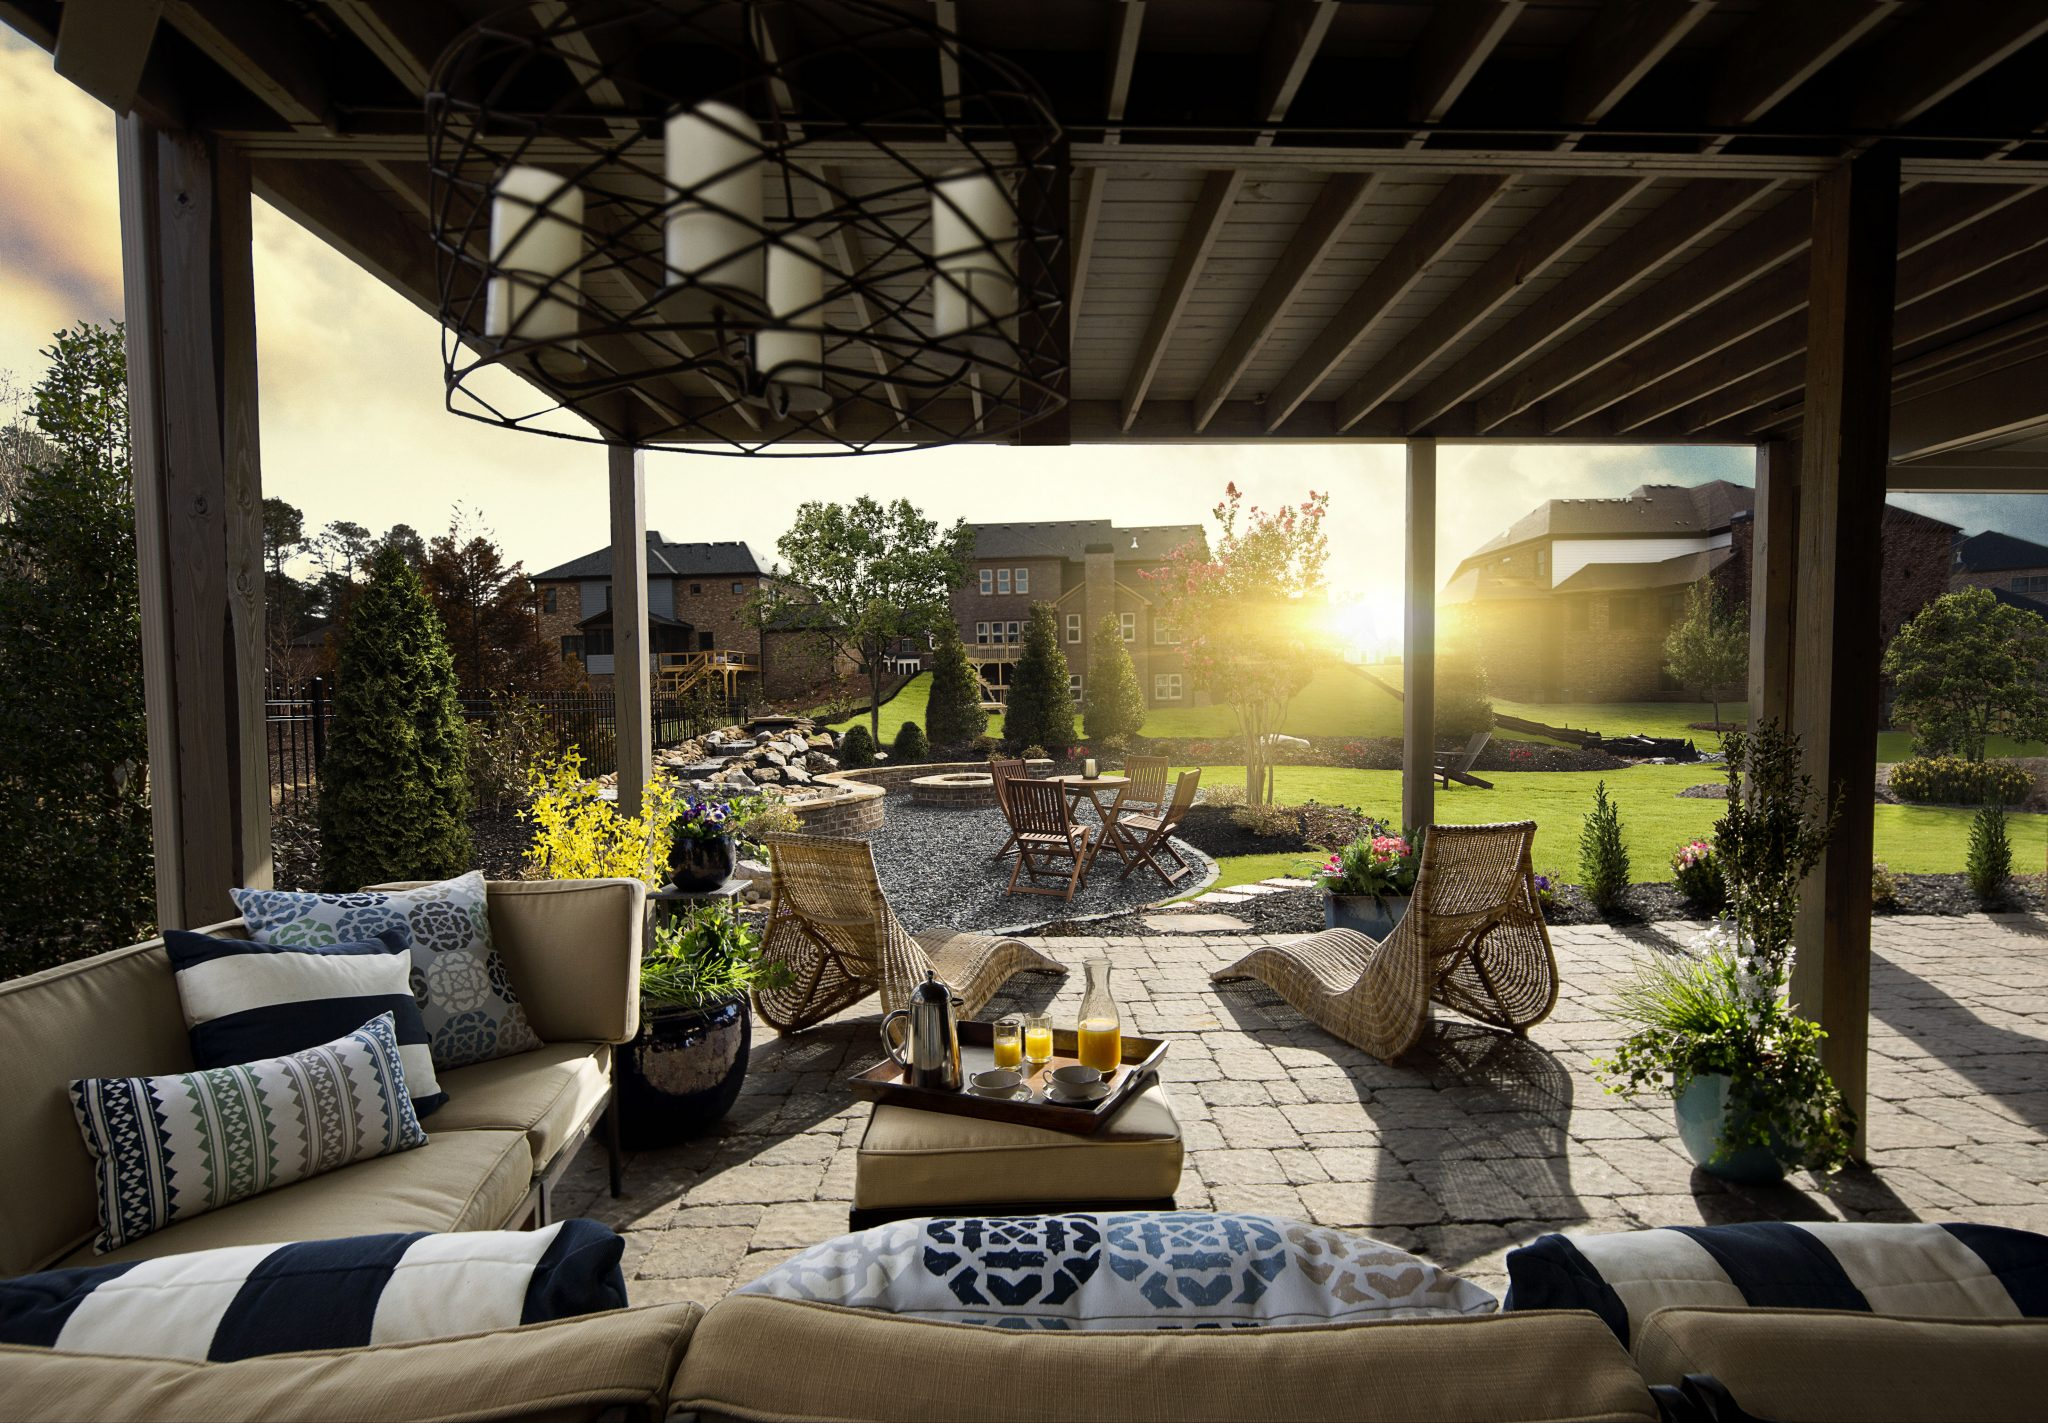 Outdoor design trends that will rule 2014 edward andrews homes - The hottest trends in patio decor ...